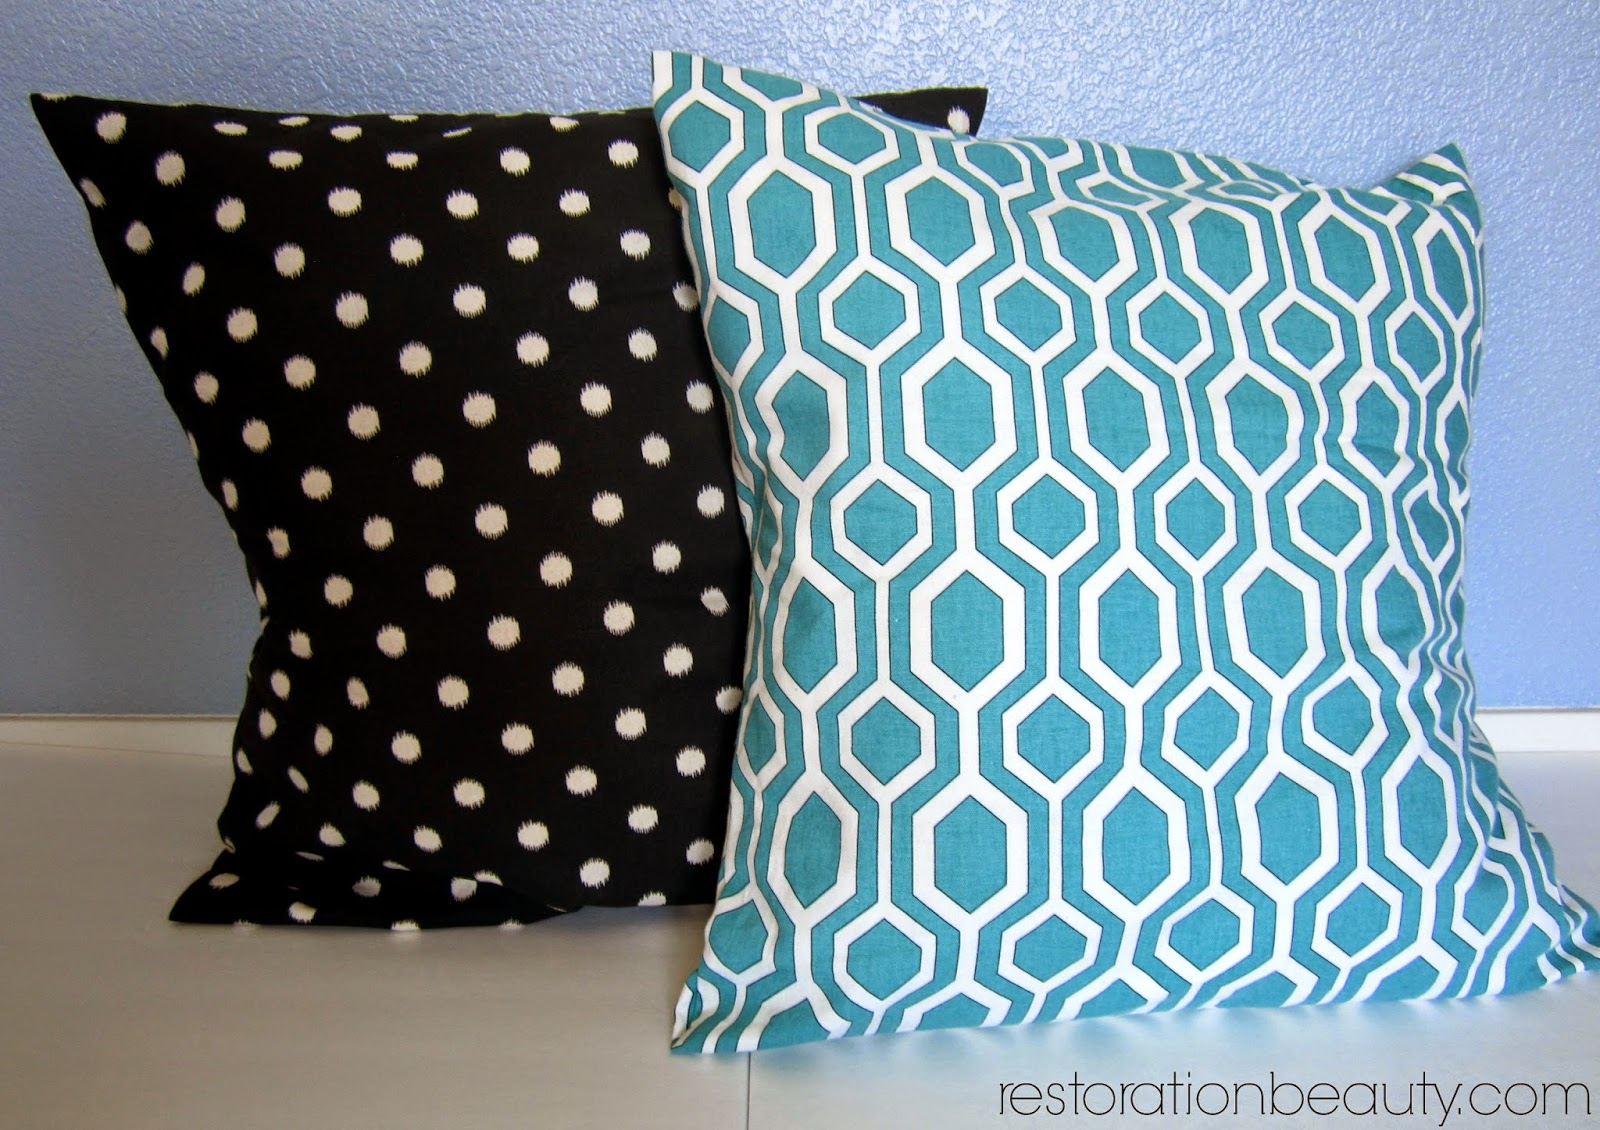 Diy No Sew Oversized Floor Pillows : Restoration Beauty: Easier Than Ever No-Sew Floor Pillows